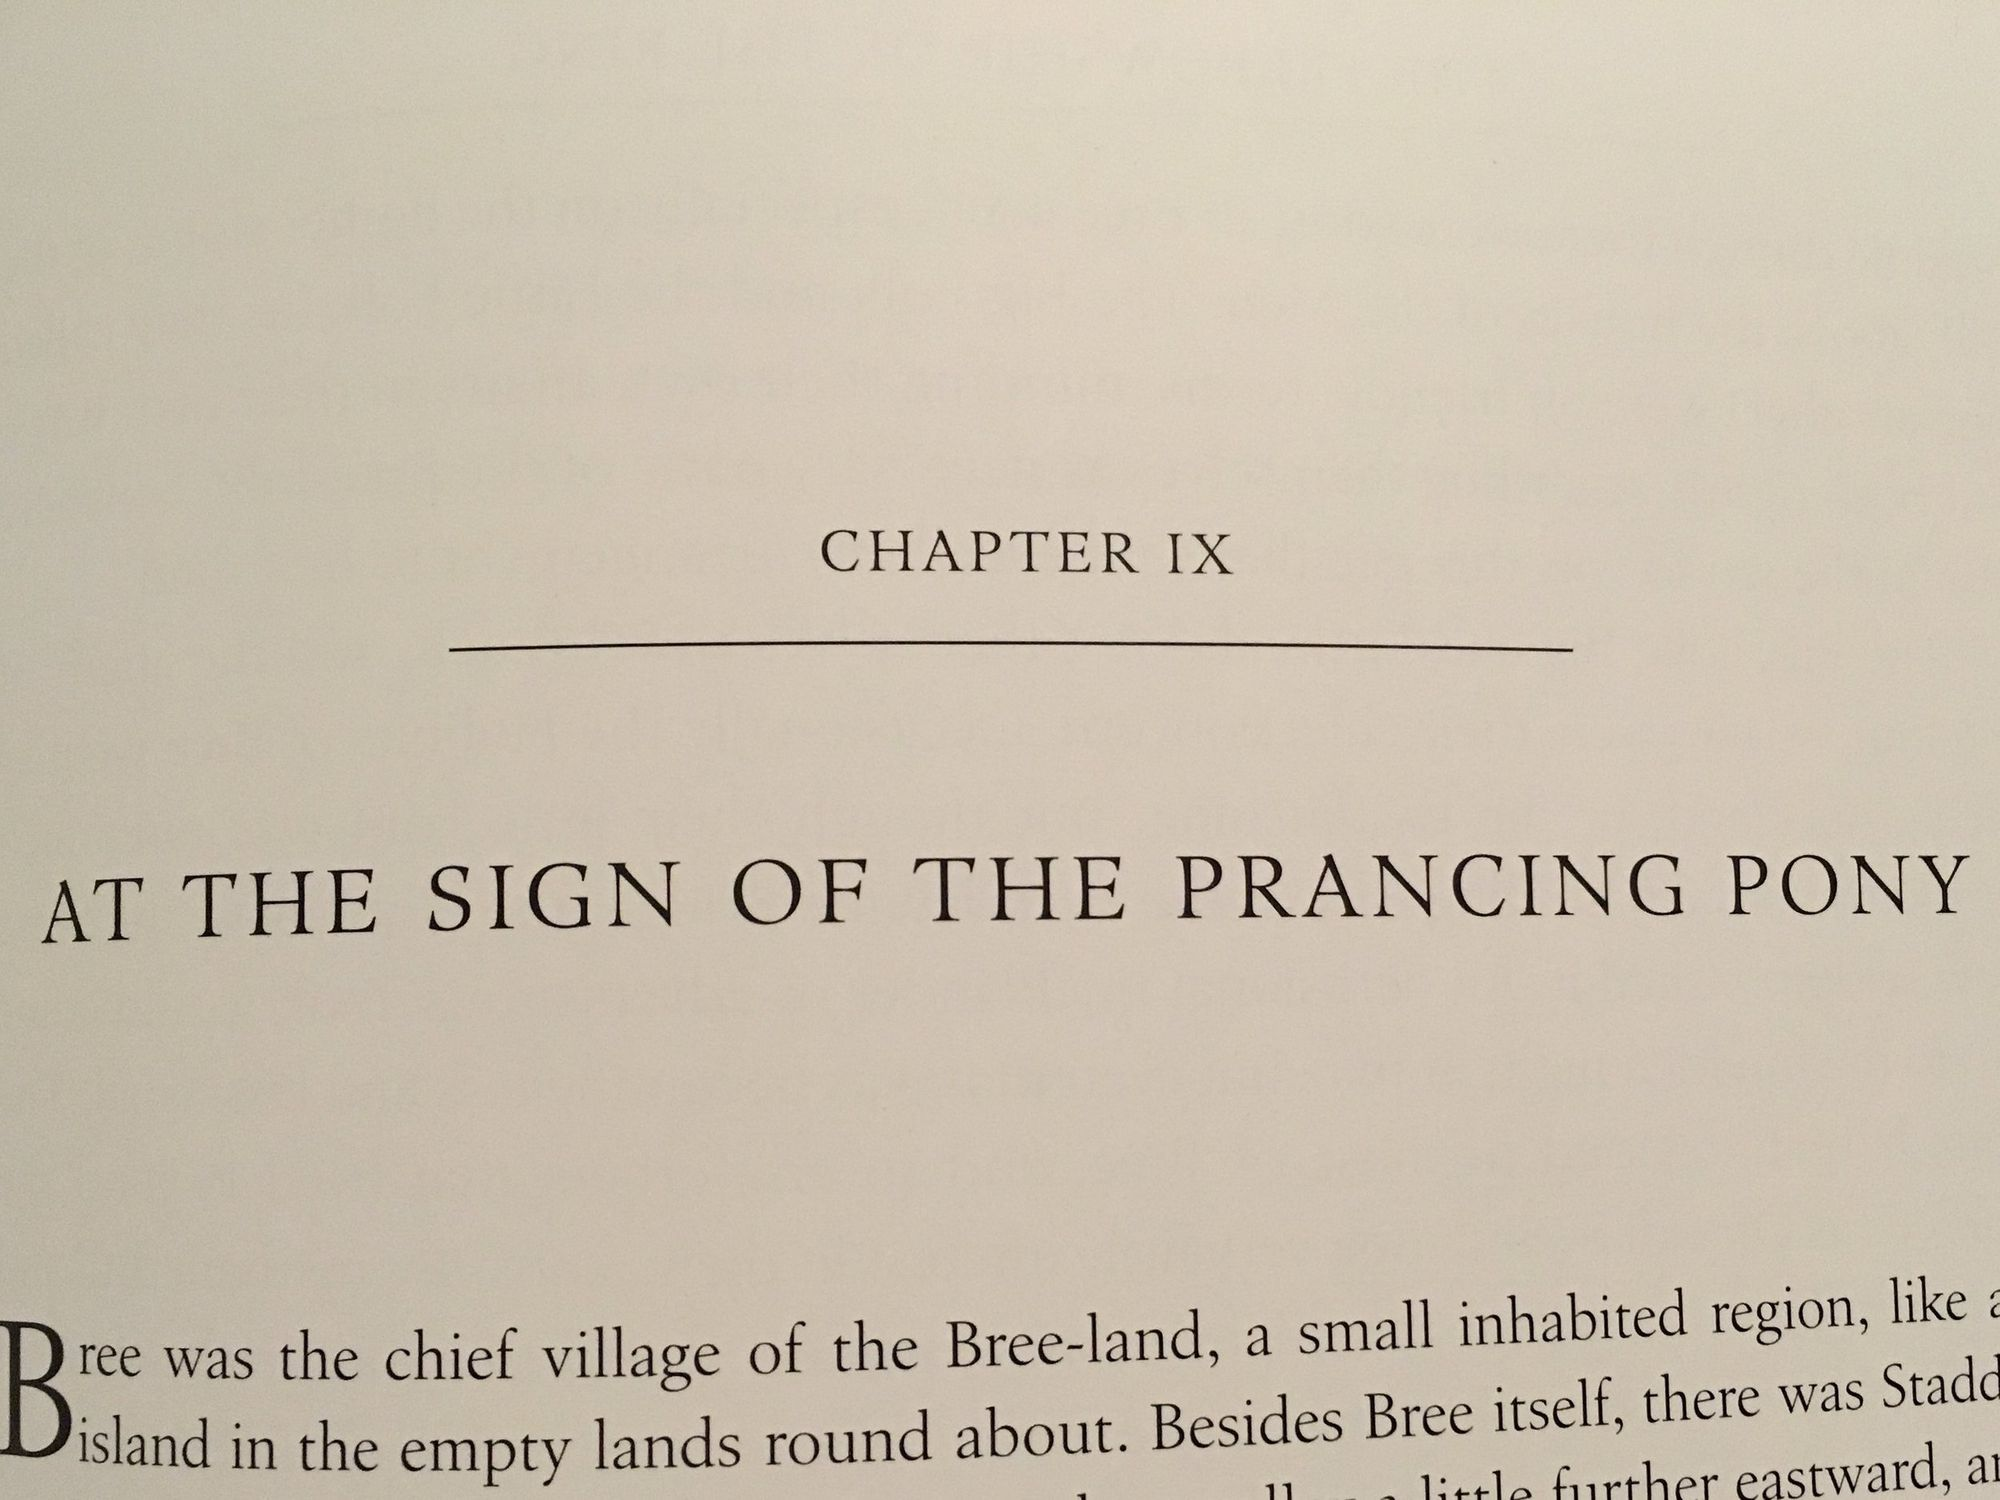 The Fellowship of The Ring: At the Sign of the Prancing Pony